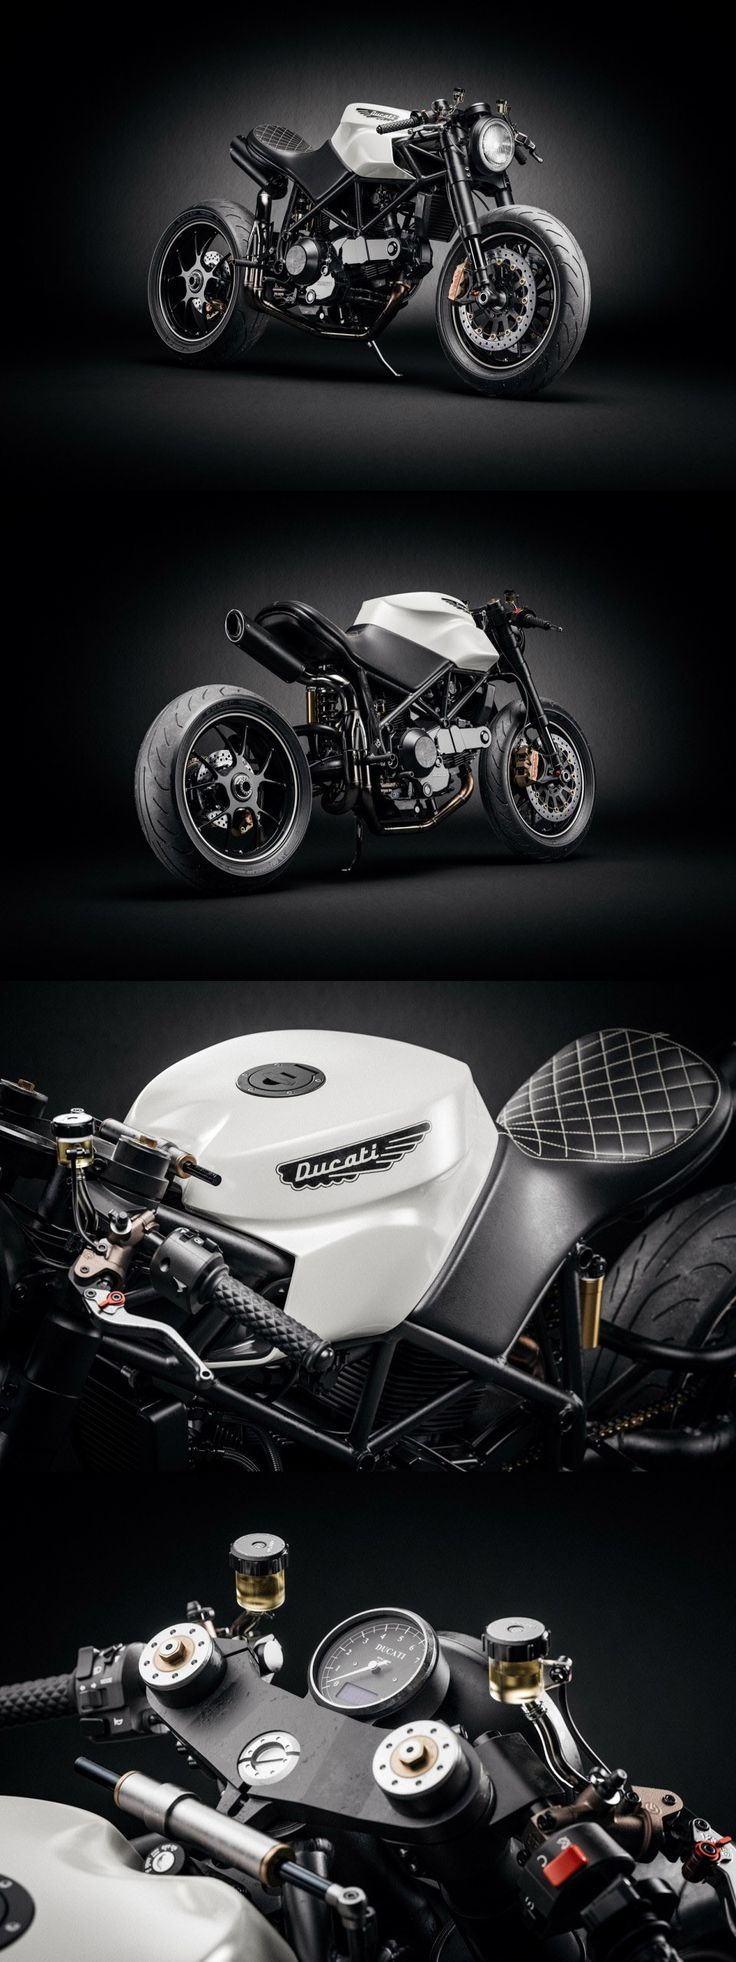 Amazing Ducati 916 Custom Café Fighter.   More images at: http://bikebrewers.com/ducati-916-custum-cafe-fighter/